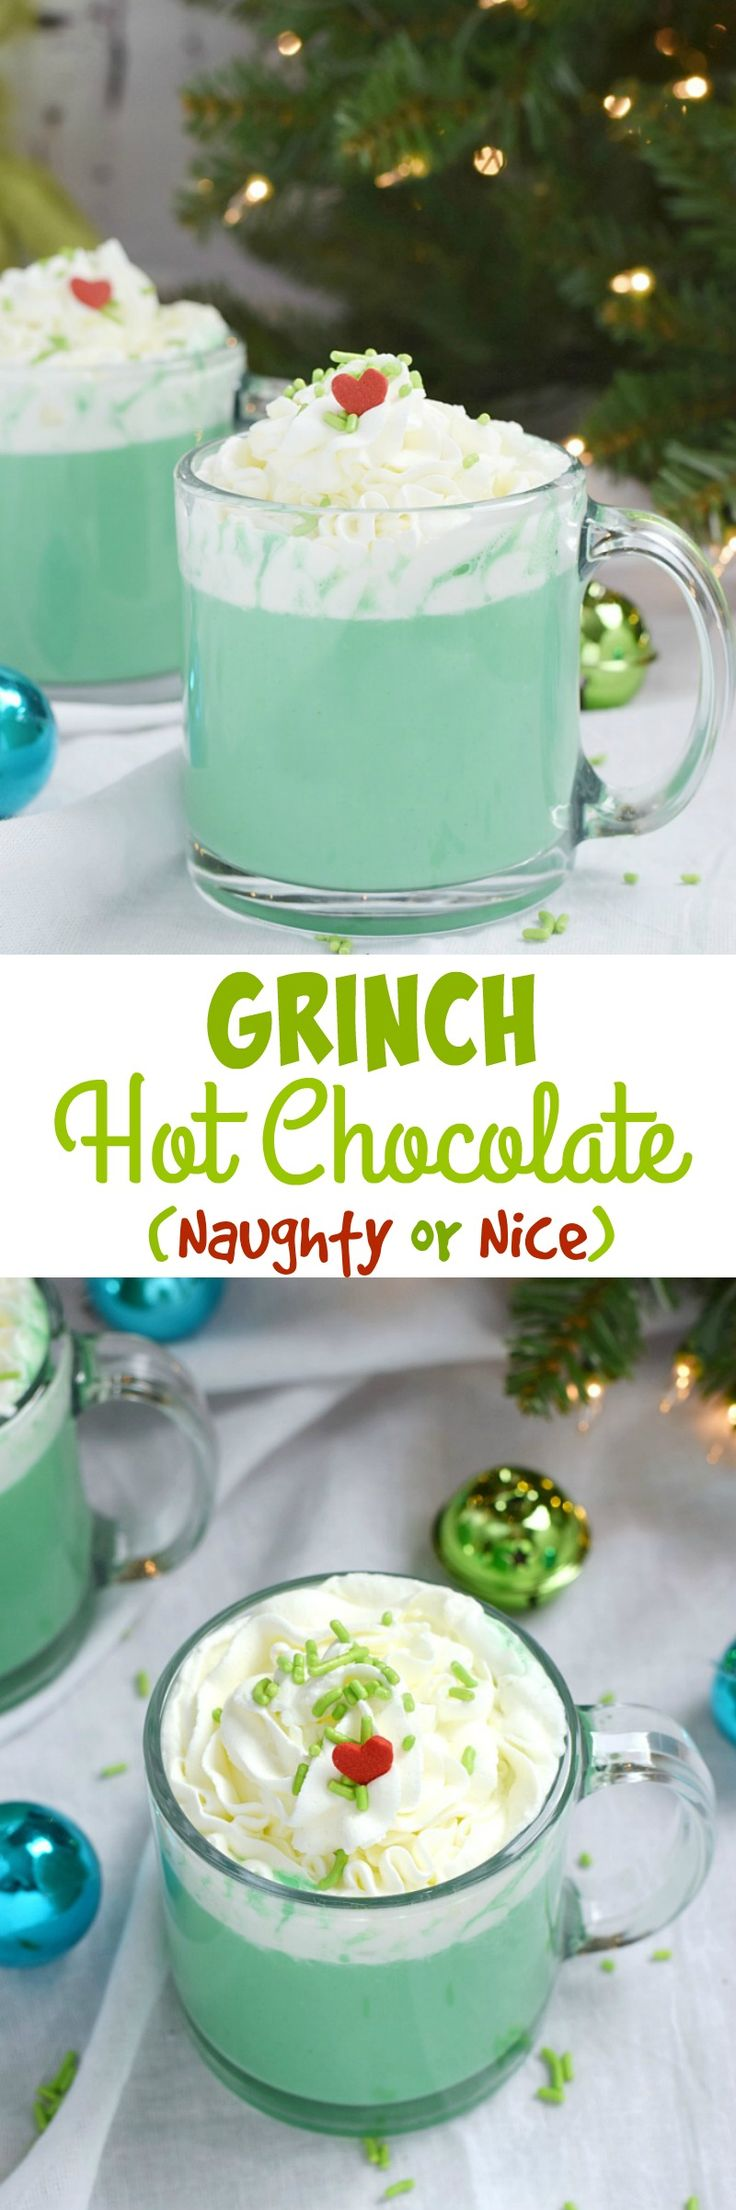 Best 25+ Hot chocolate quotes ideas on Pinterest | Winter weddings ...